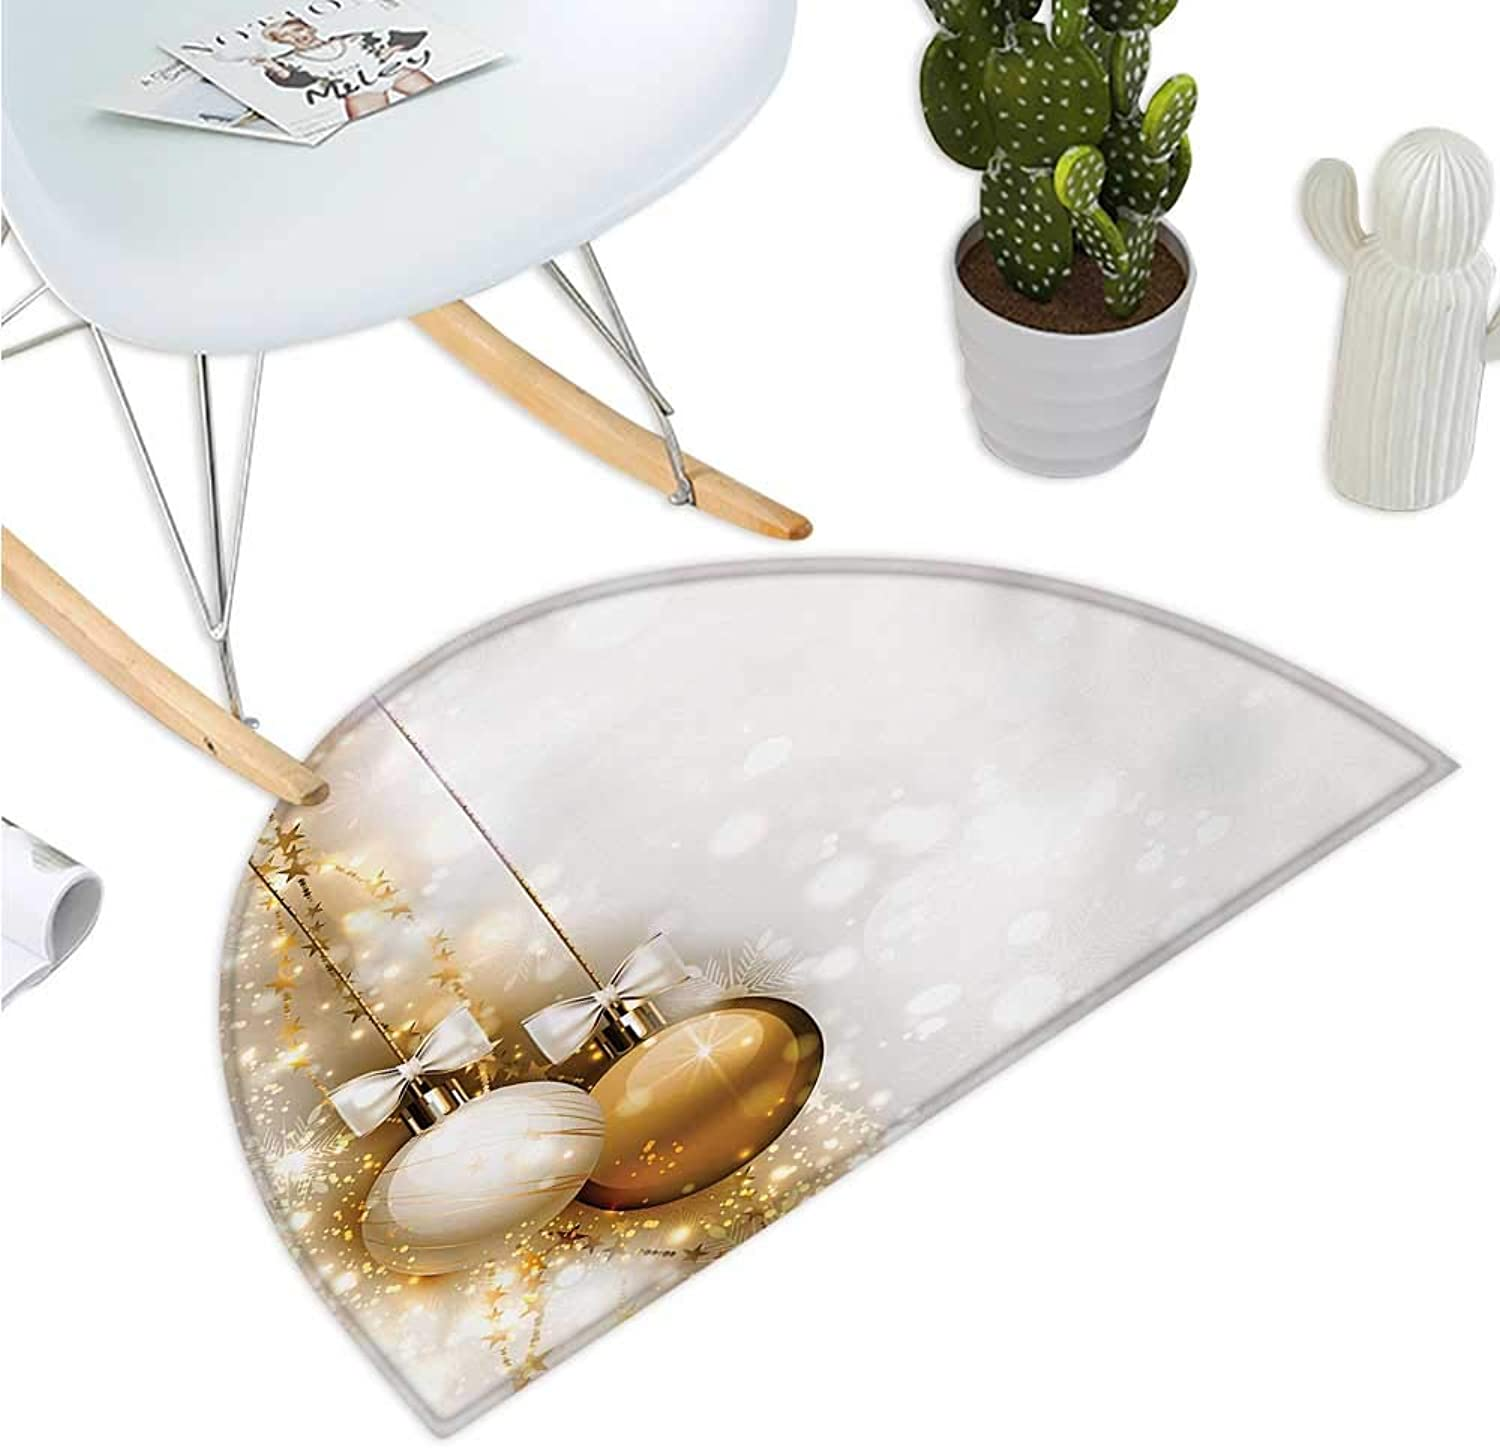 Christmas Semicircular Cushion Religious Rituals Featured Xmas Baubles with Ribbon Holiday Wish Artwork Image Bathroom Mat H 39.3  xD 59  White Beige